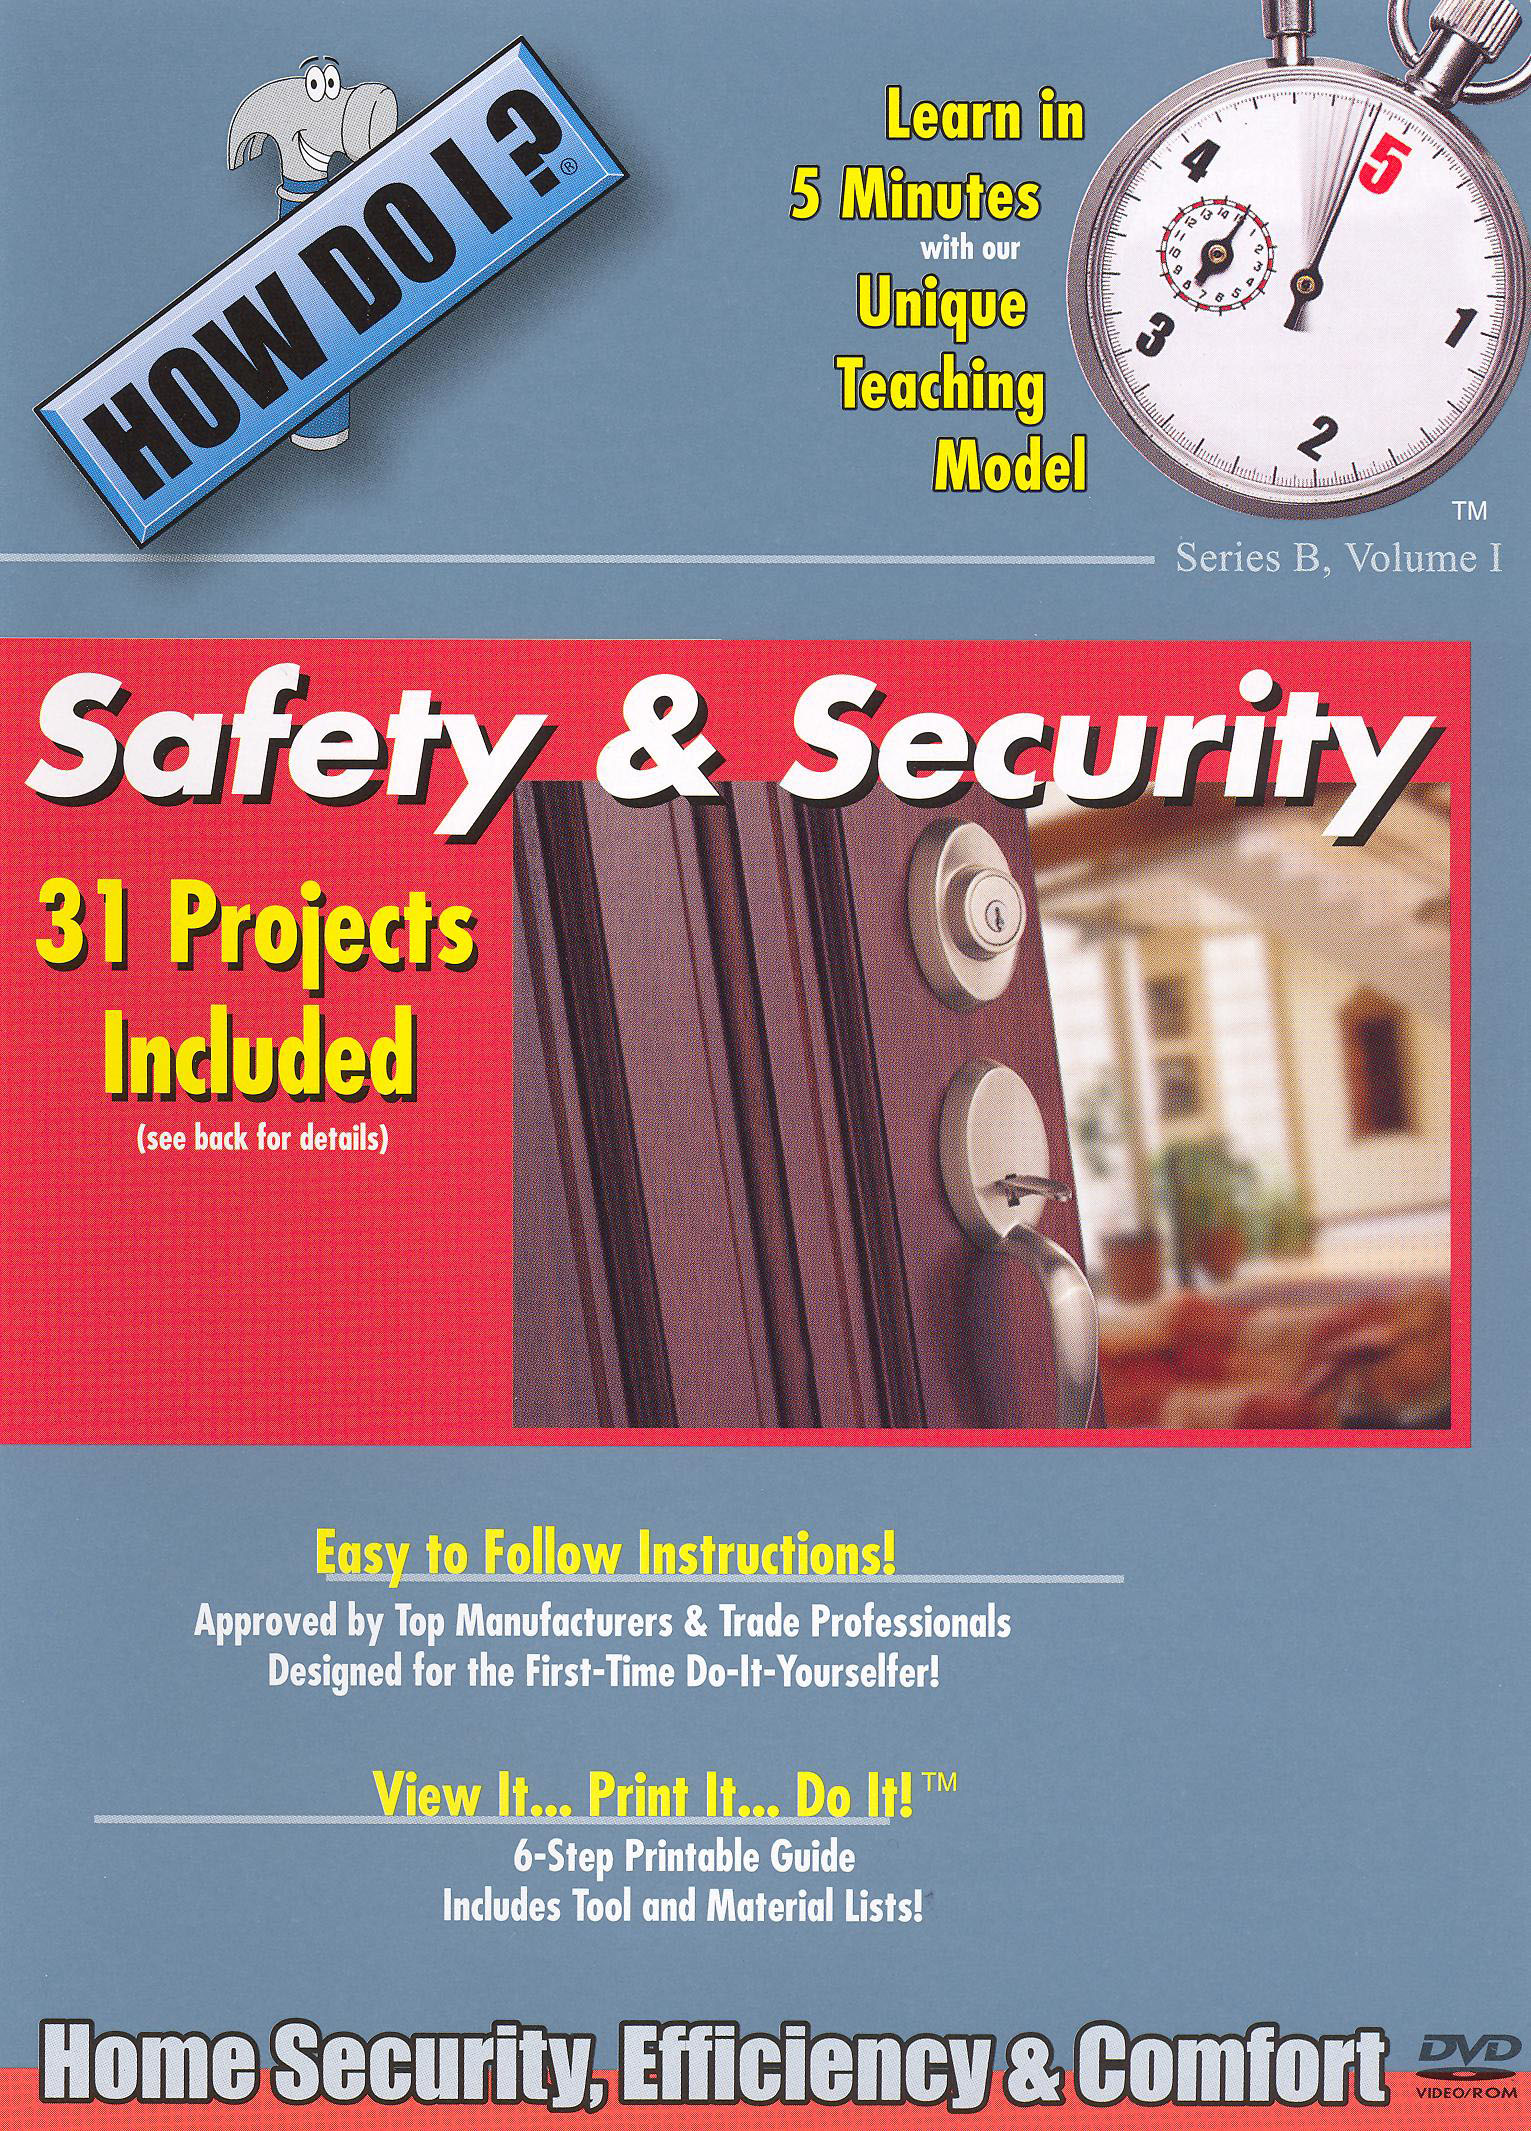 How Do I: Safety and Security